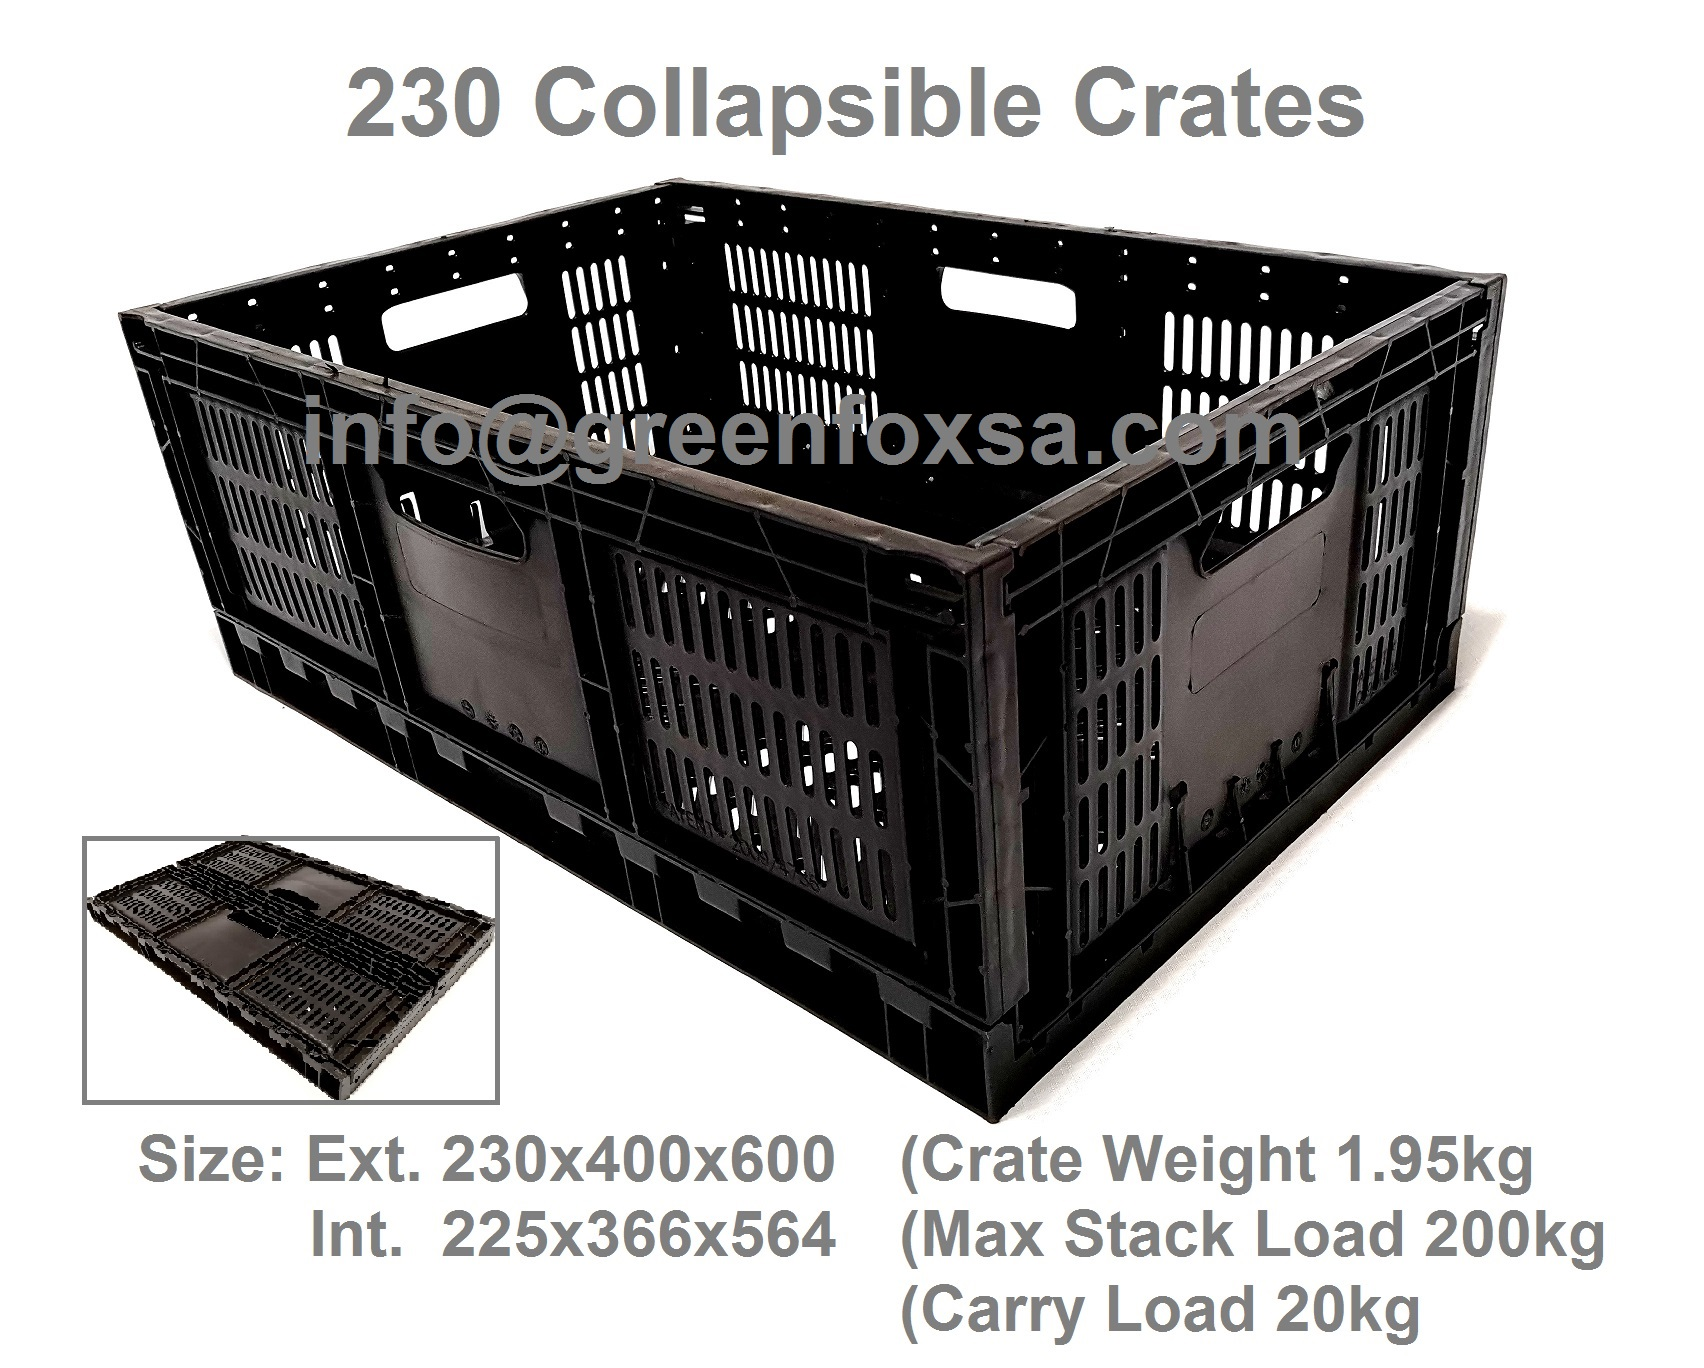 farming-crates-collapsible-230-black-plastic-crates